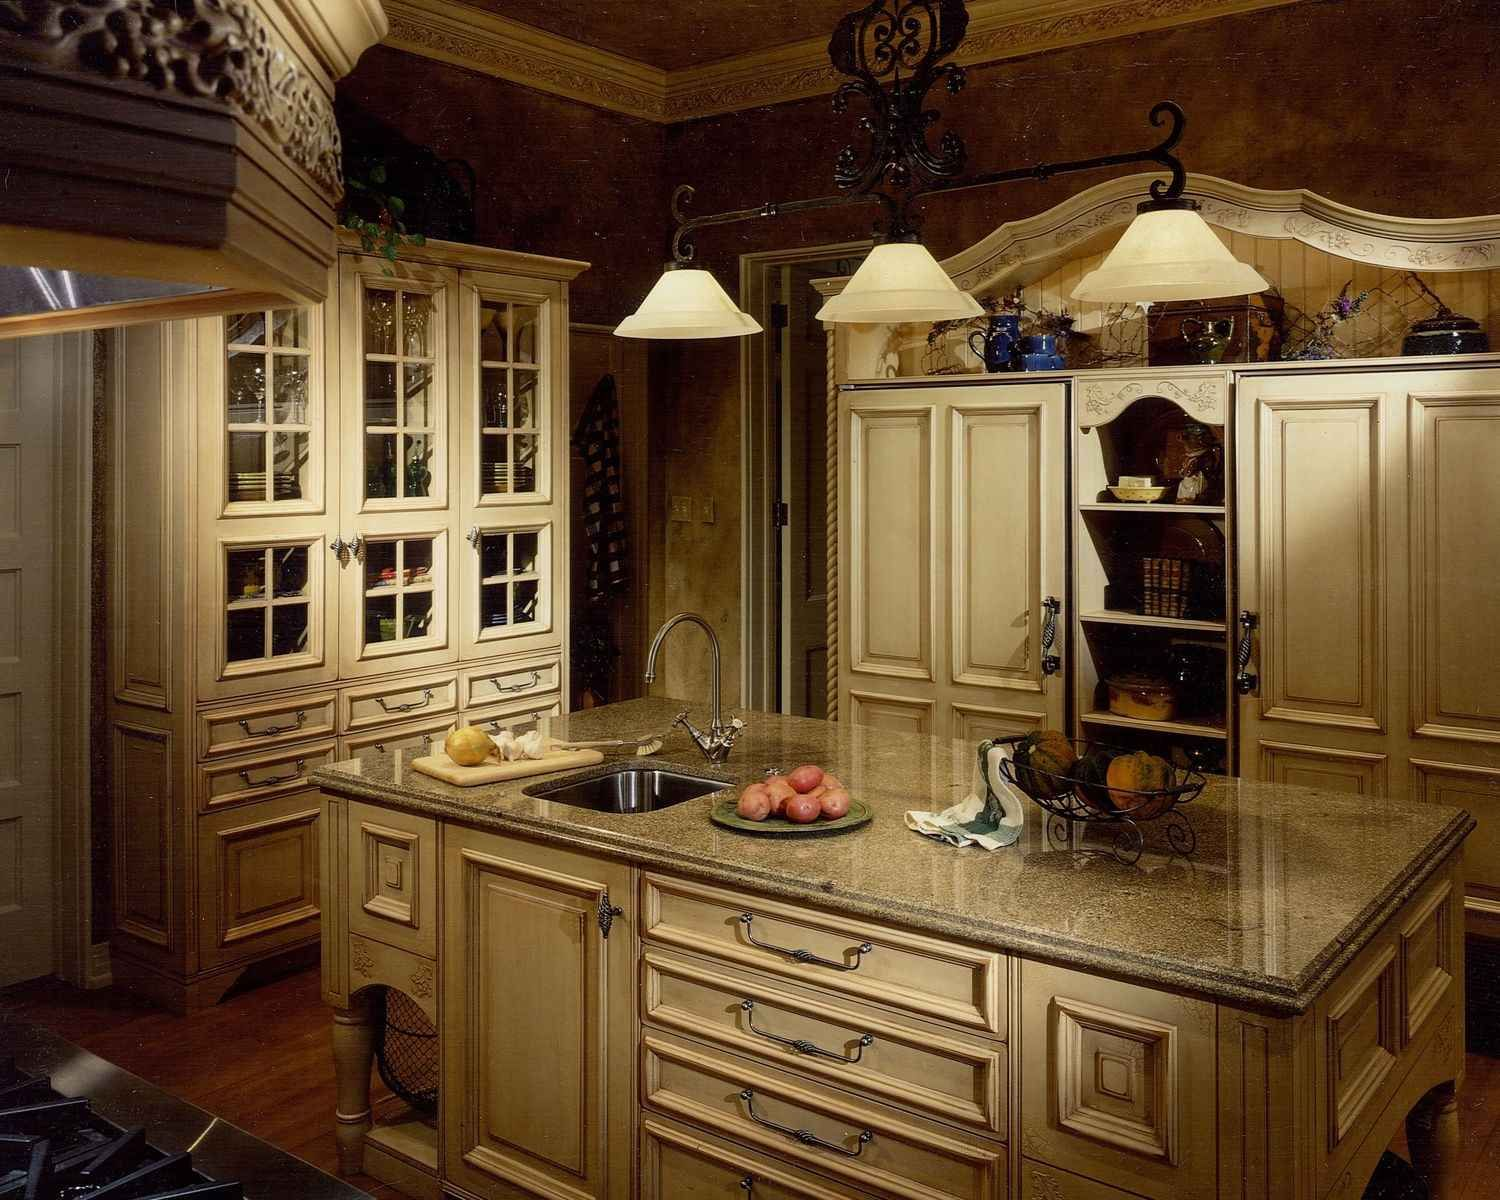 country kitchen lighting fixtures. French Country Kitchen Décor Lighting Fixtures